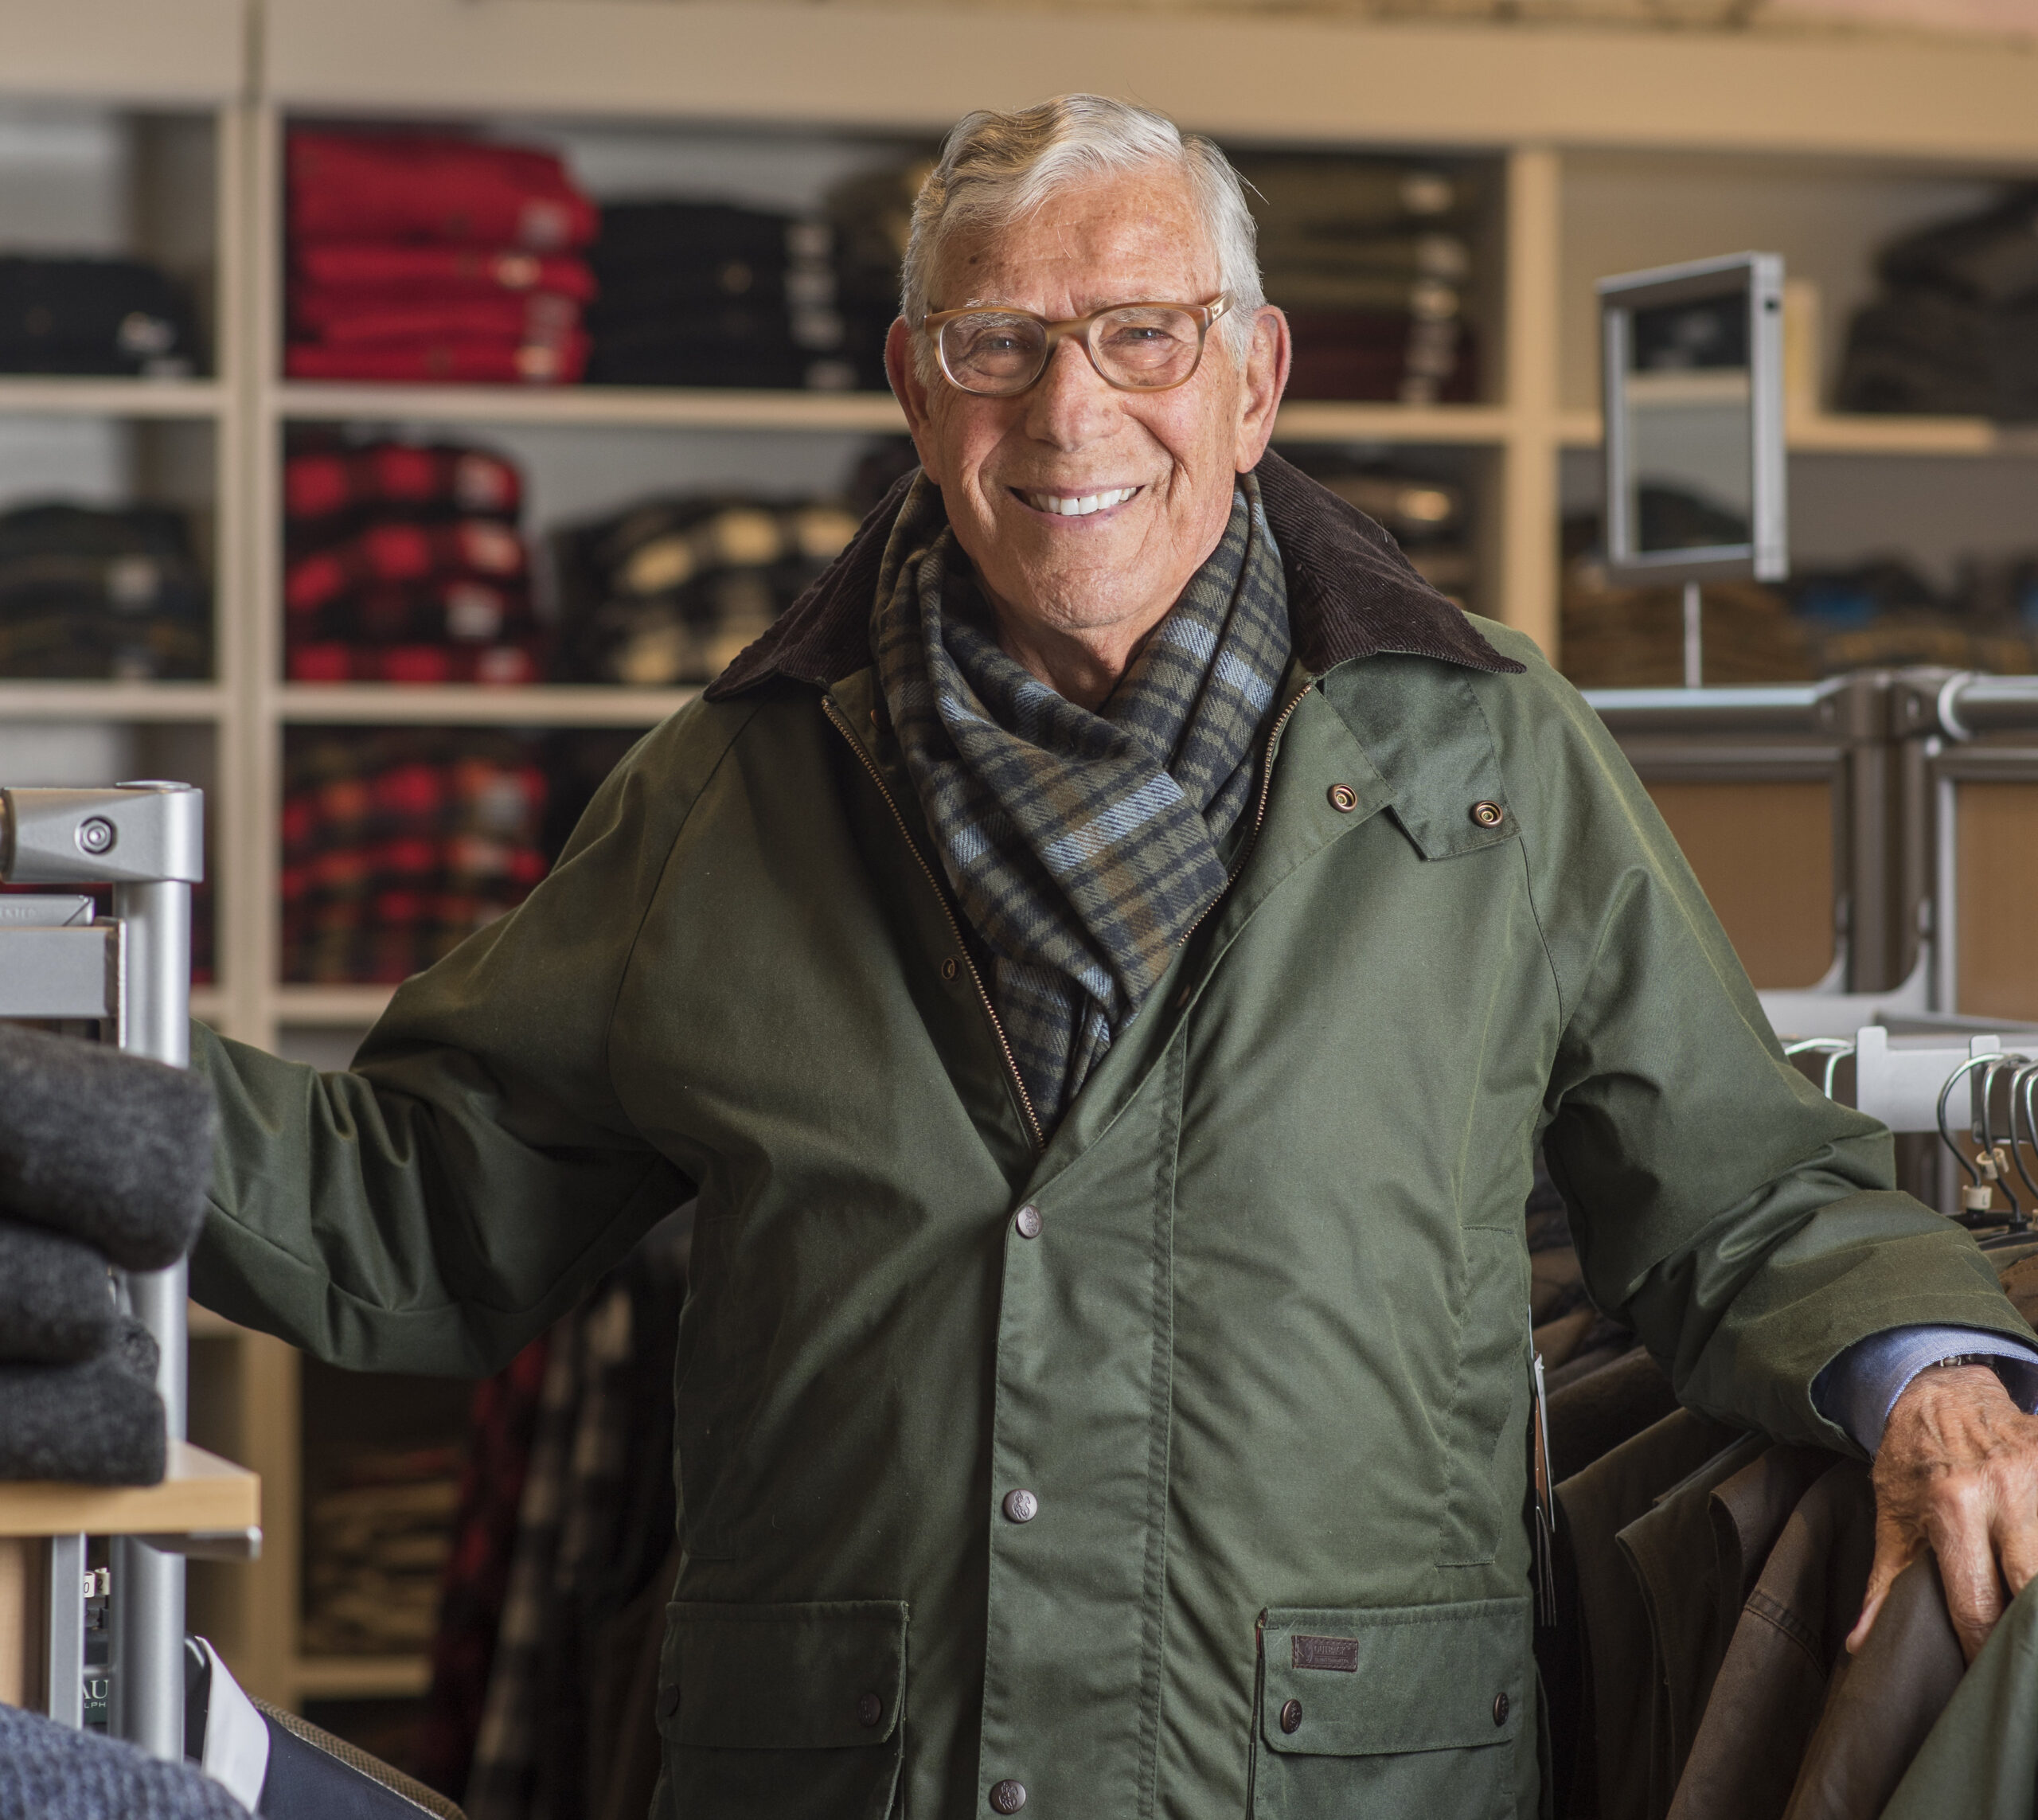 Owner Dick Schreiber wearing classic outerwear